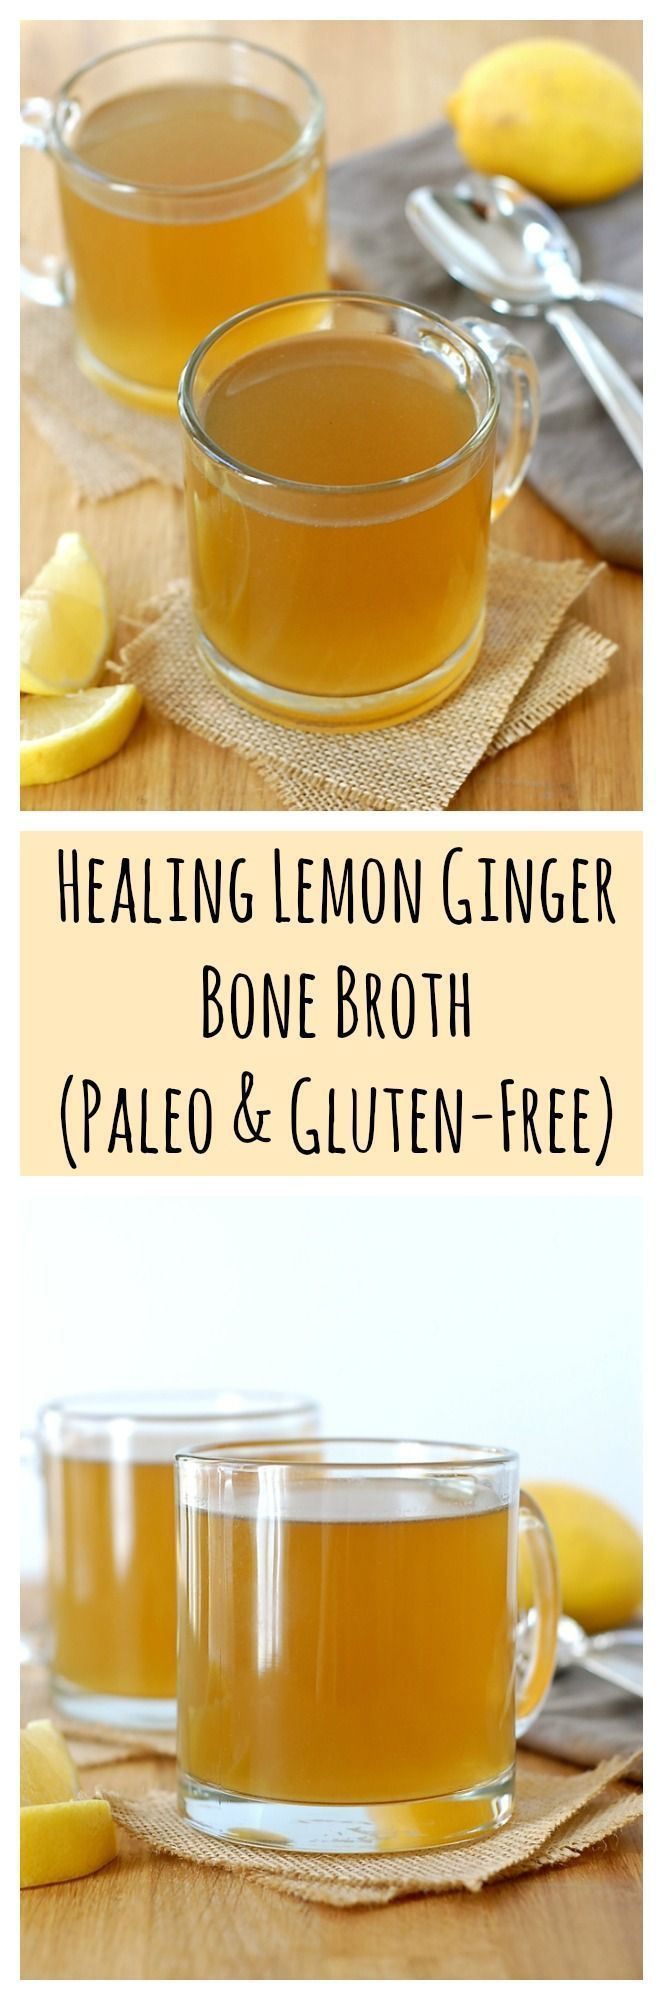 Healing Lemon Ginger Bone Broth (Paleo & Gluten-Free). No matter what ails you, this is the cure!